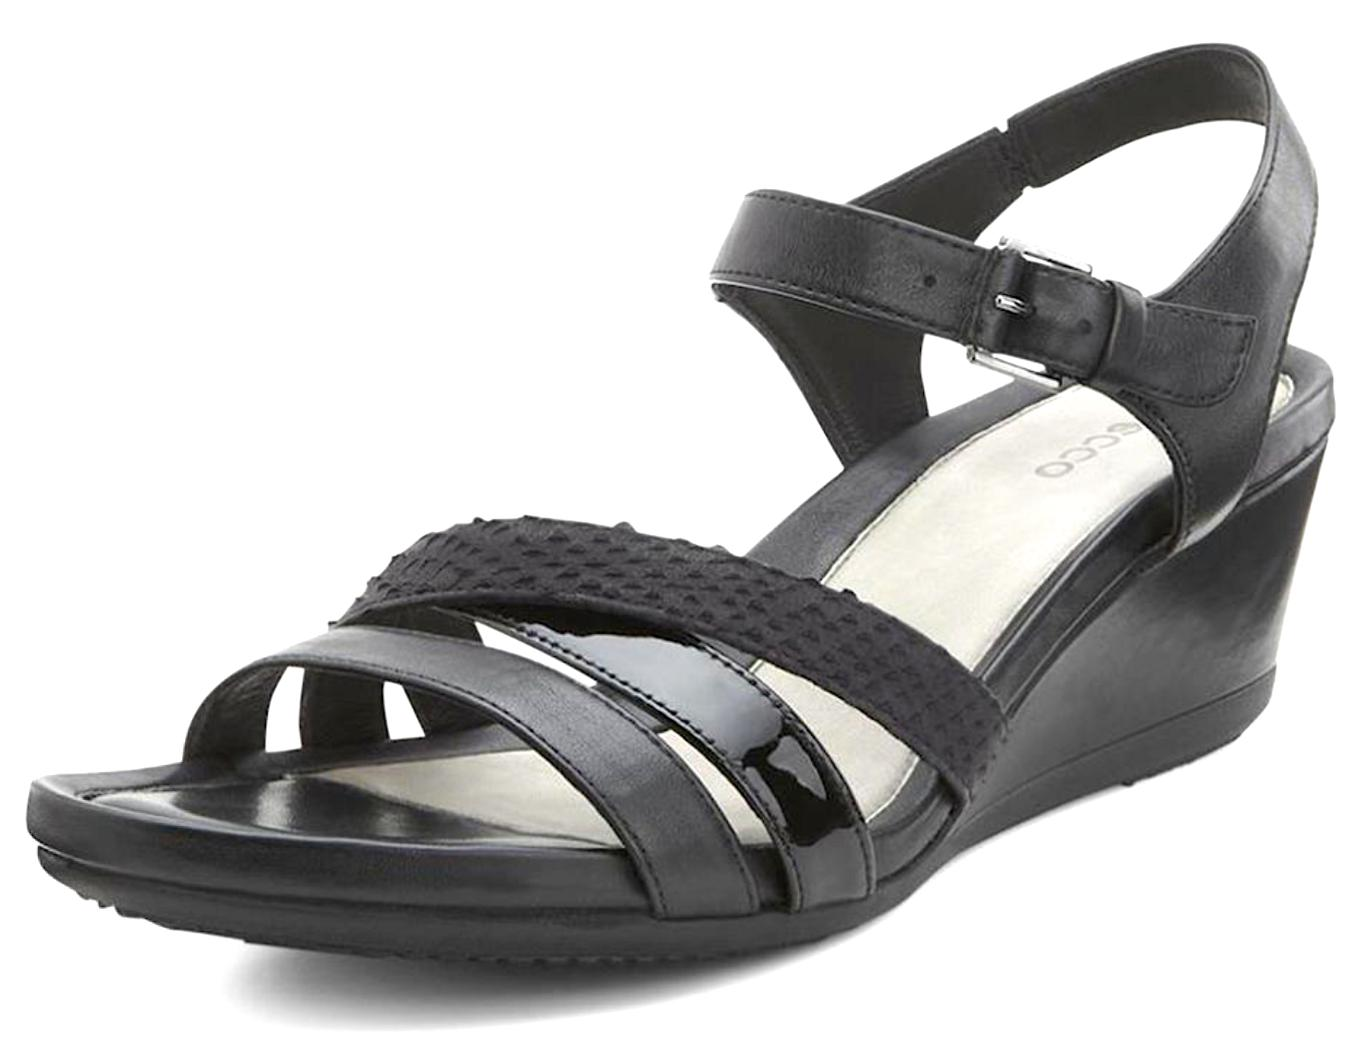 ECCO TOUCH WOMEN'S BLACK WEDGE SANDAL SIZE 41 1173